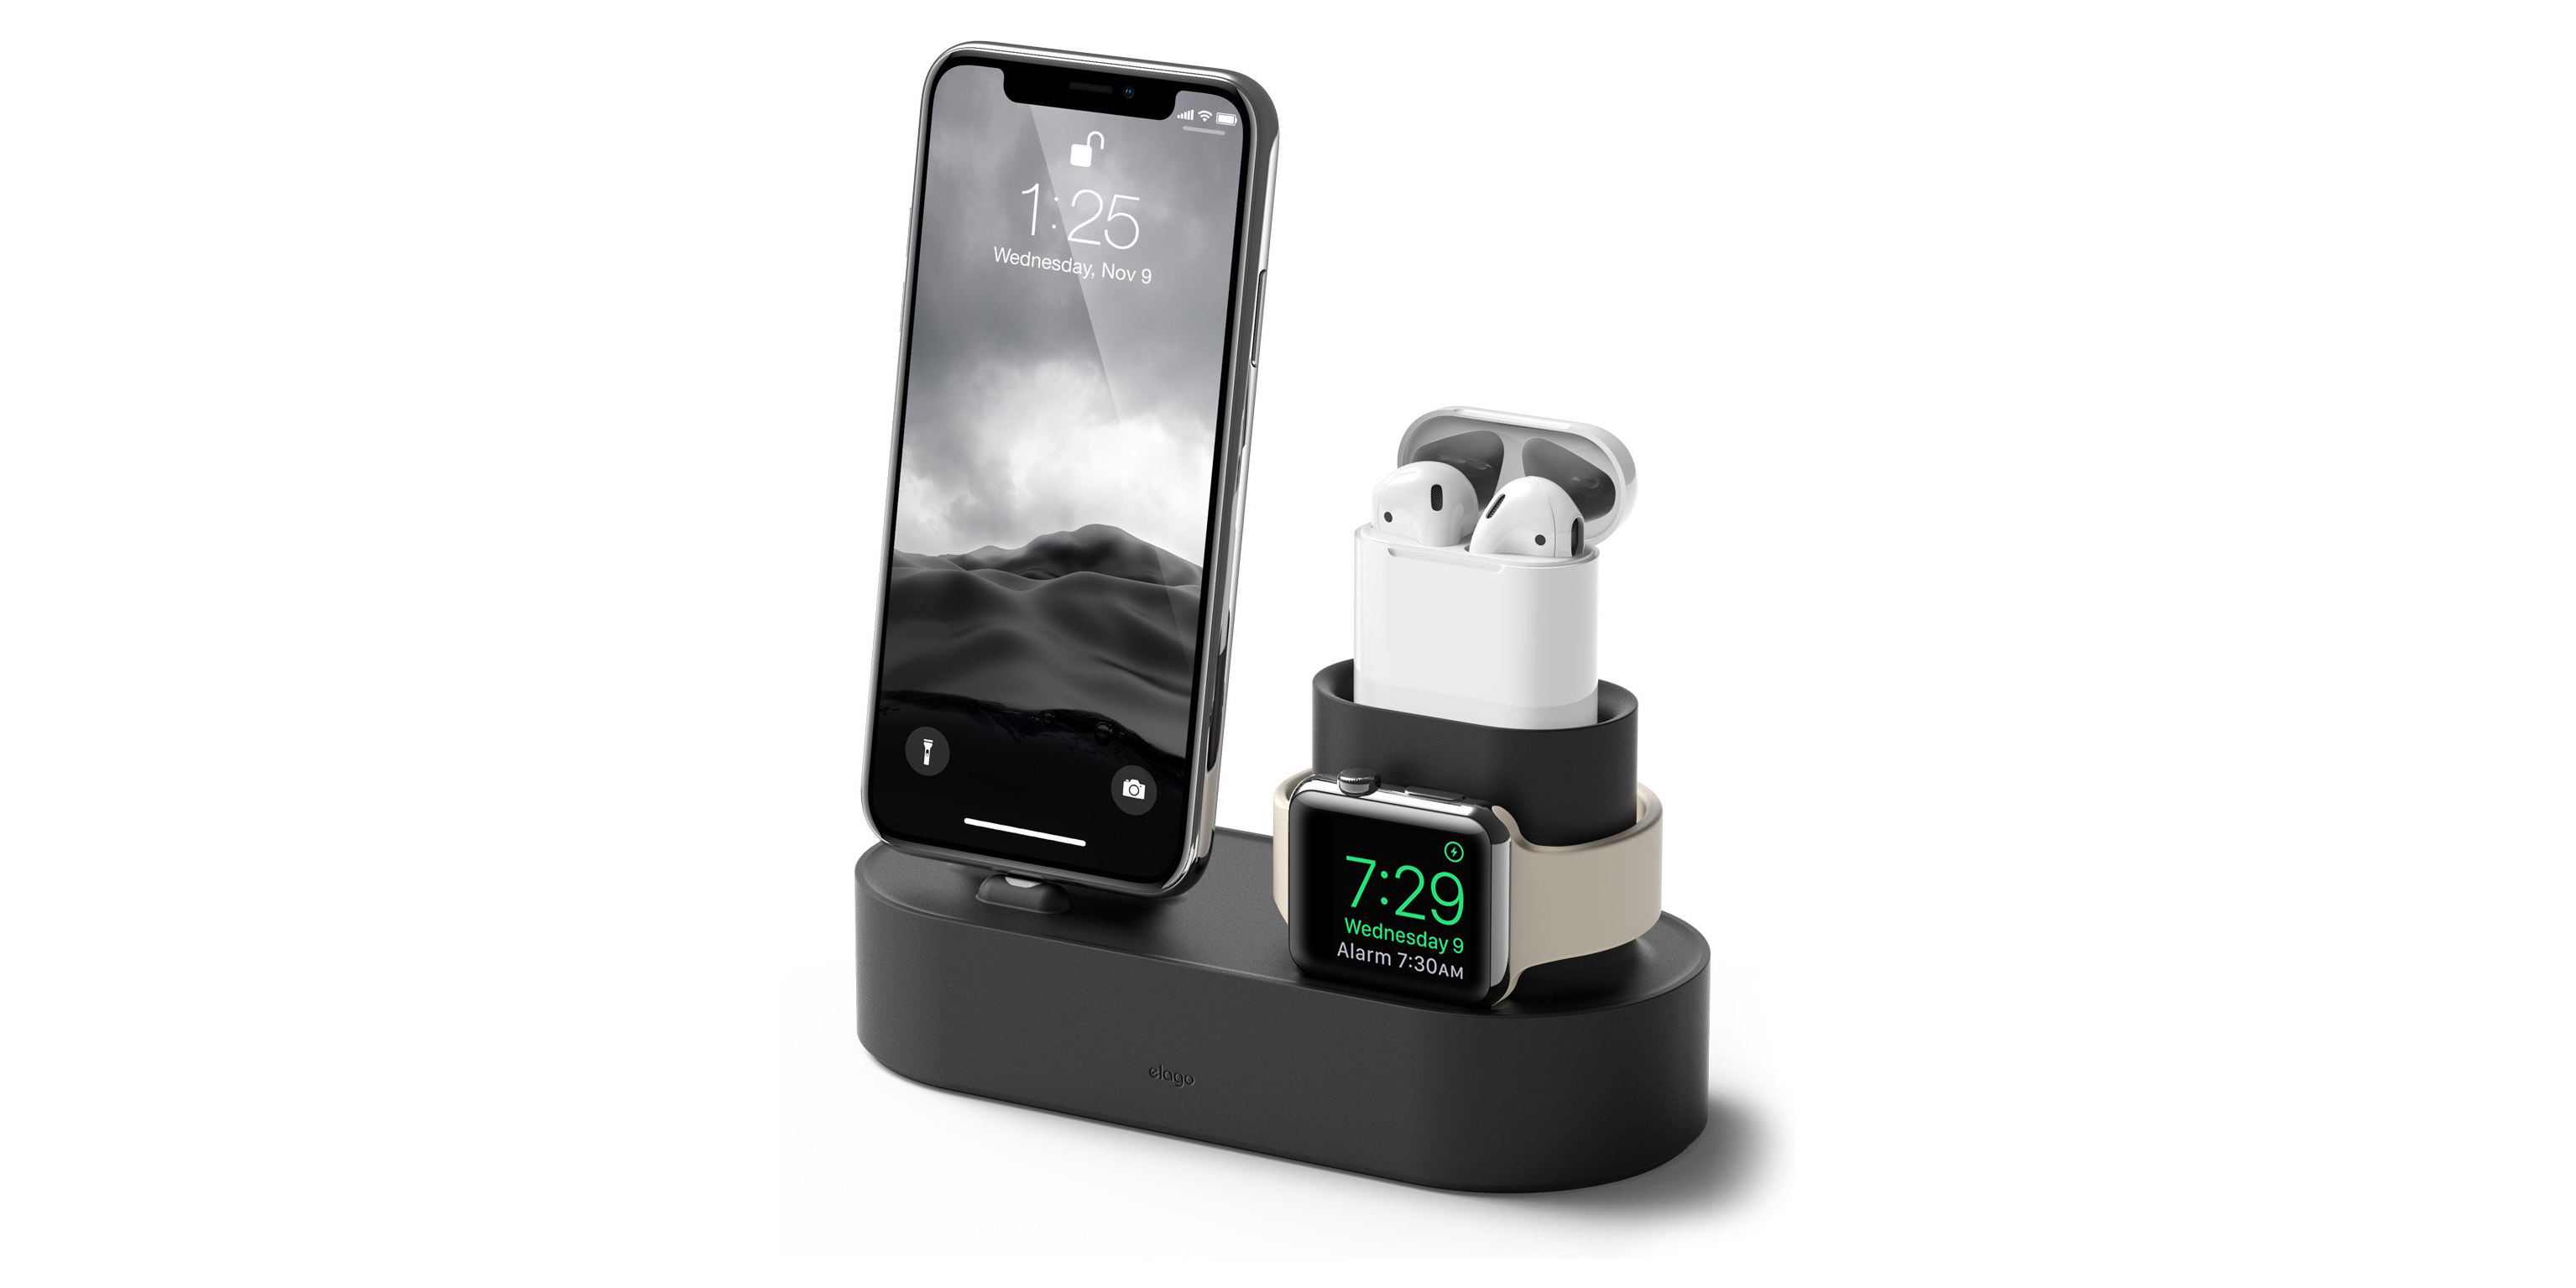 Elago Charging Hub delivers a home for your iPhone, Apple Watch and AirPods at $20